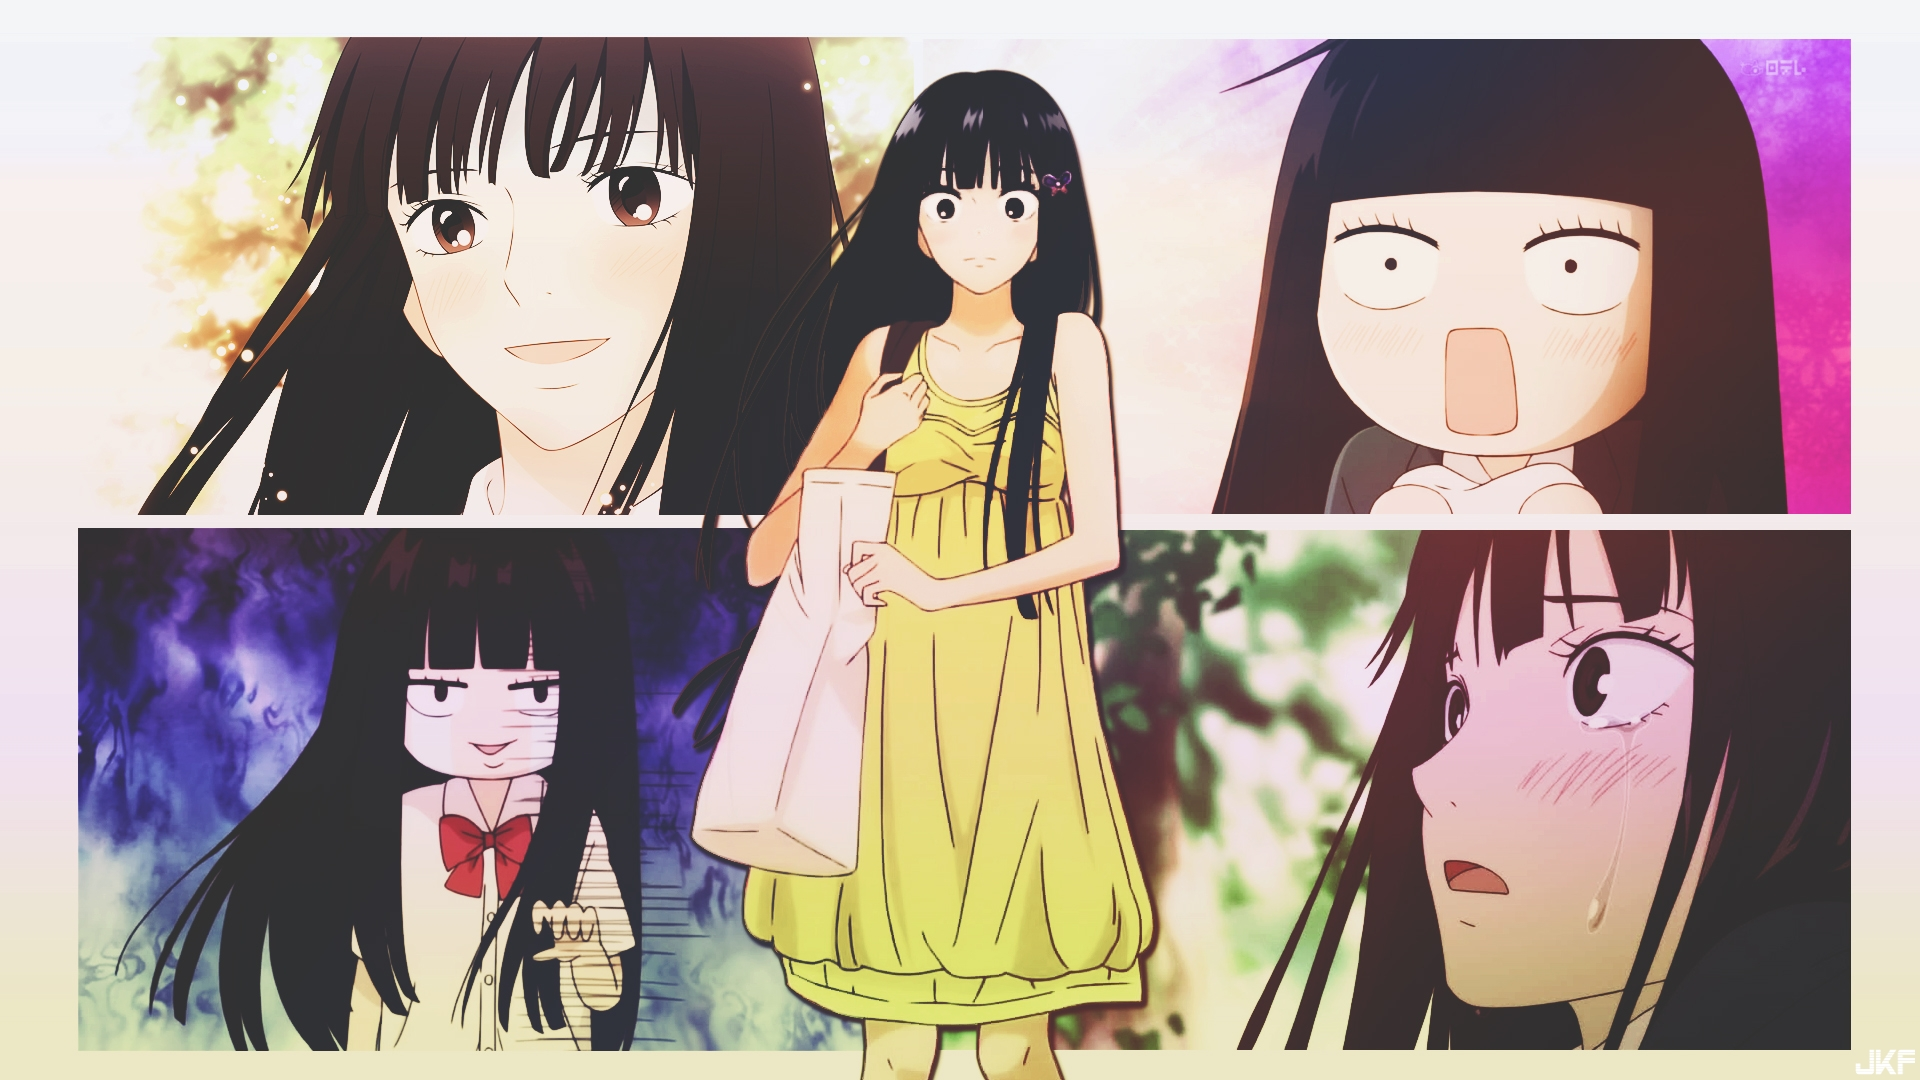 sawako_wallpaper_by_dinocojv-d9pyyvg.jpg